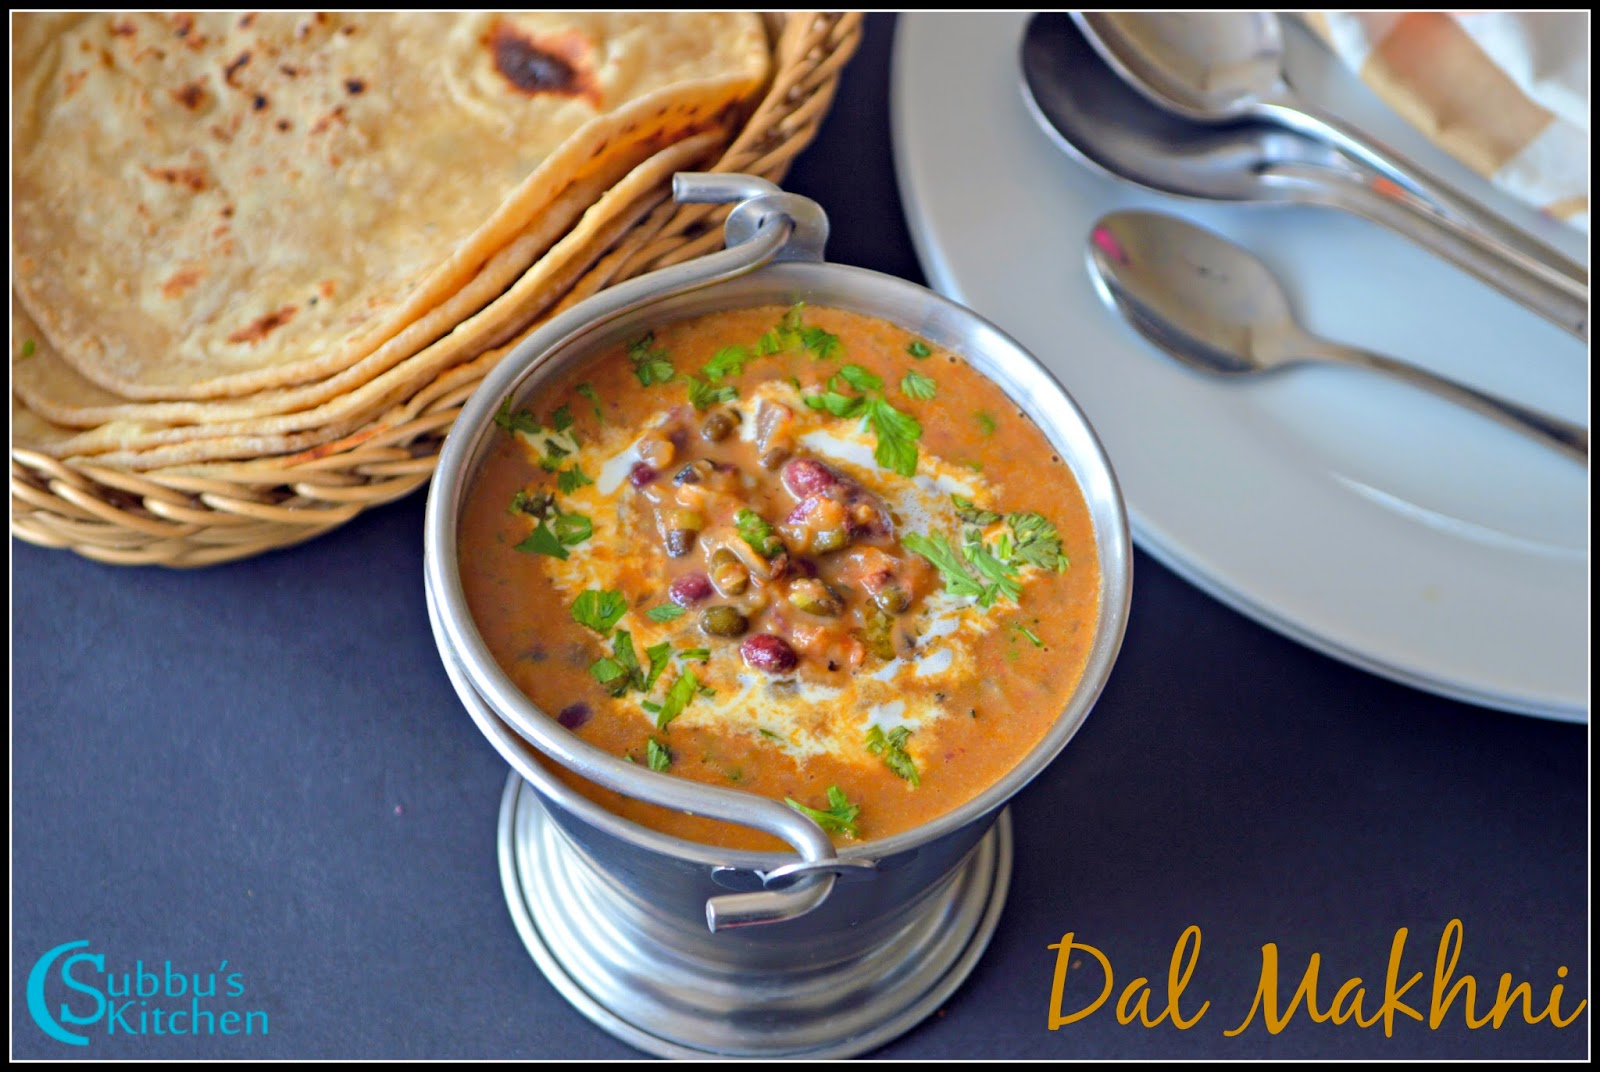 Dal makhani recipe subbus kitchen dal makhani often referred to maa ki dal mother of all dal varieties yes the statement is absolutely true the texture flavour taste is forumfinder Image collections